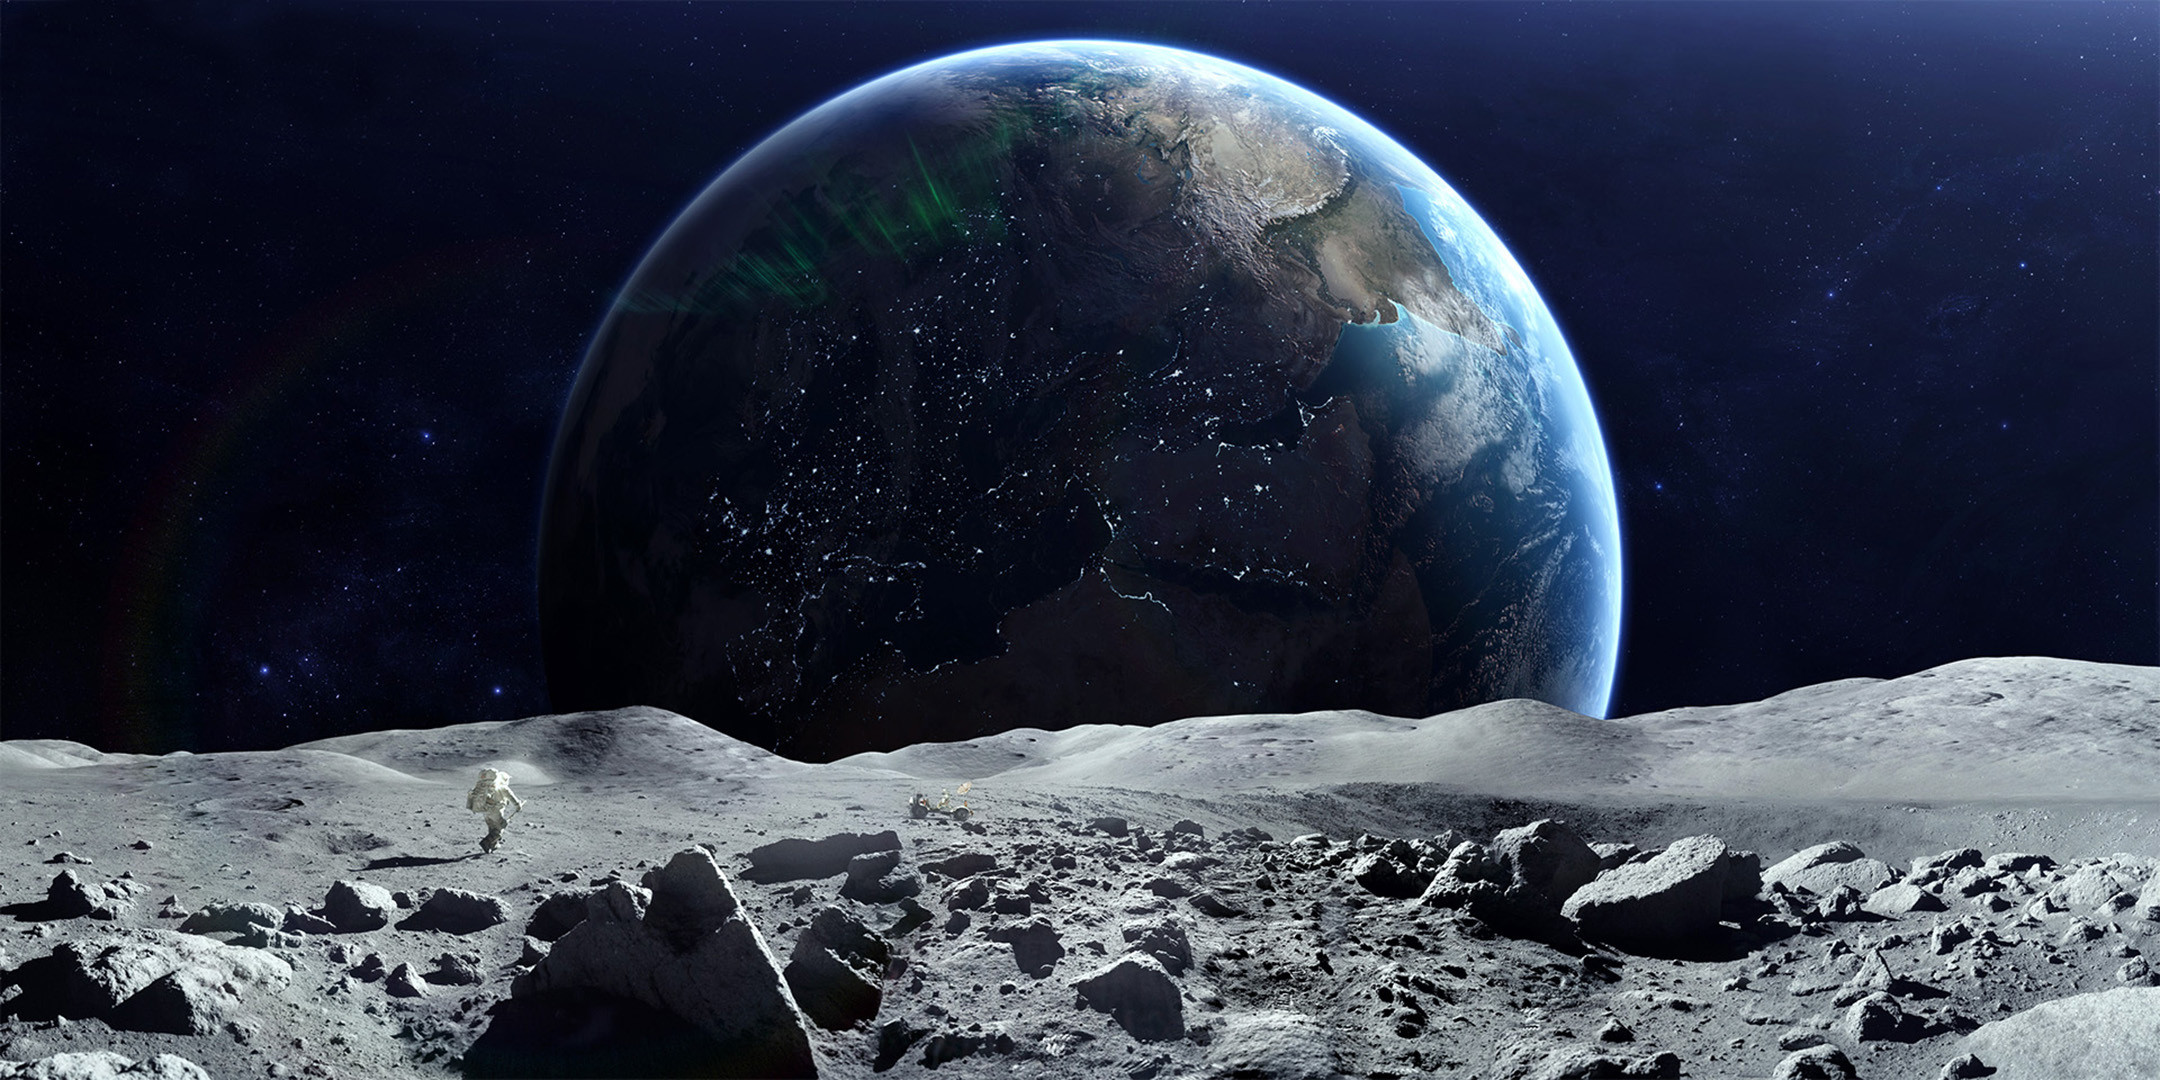 Astronaut on the moon wallpaper 65 images - Space moon wallpaper ...